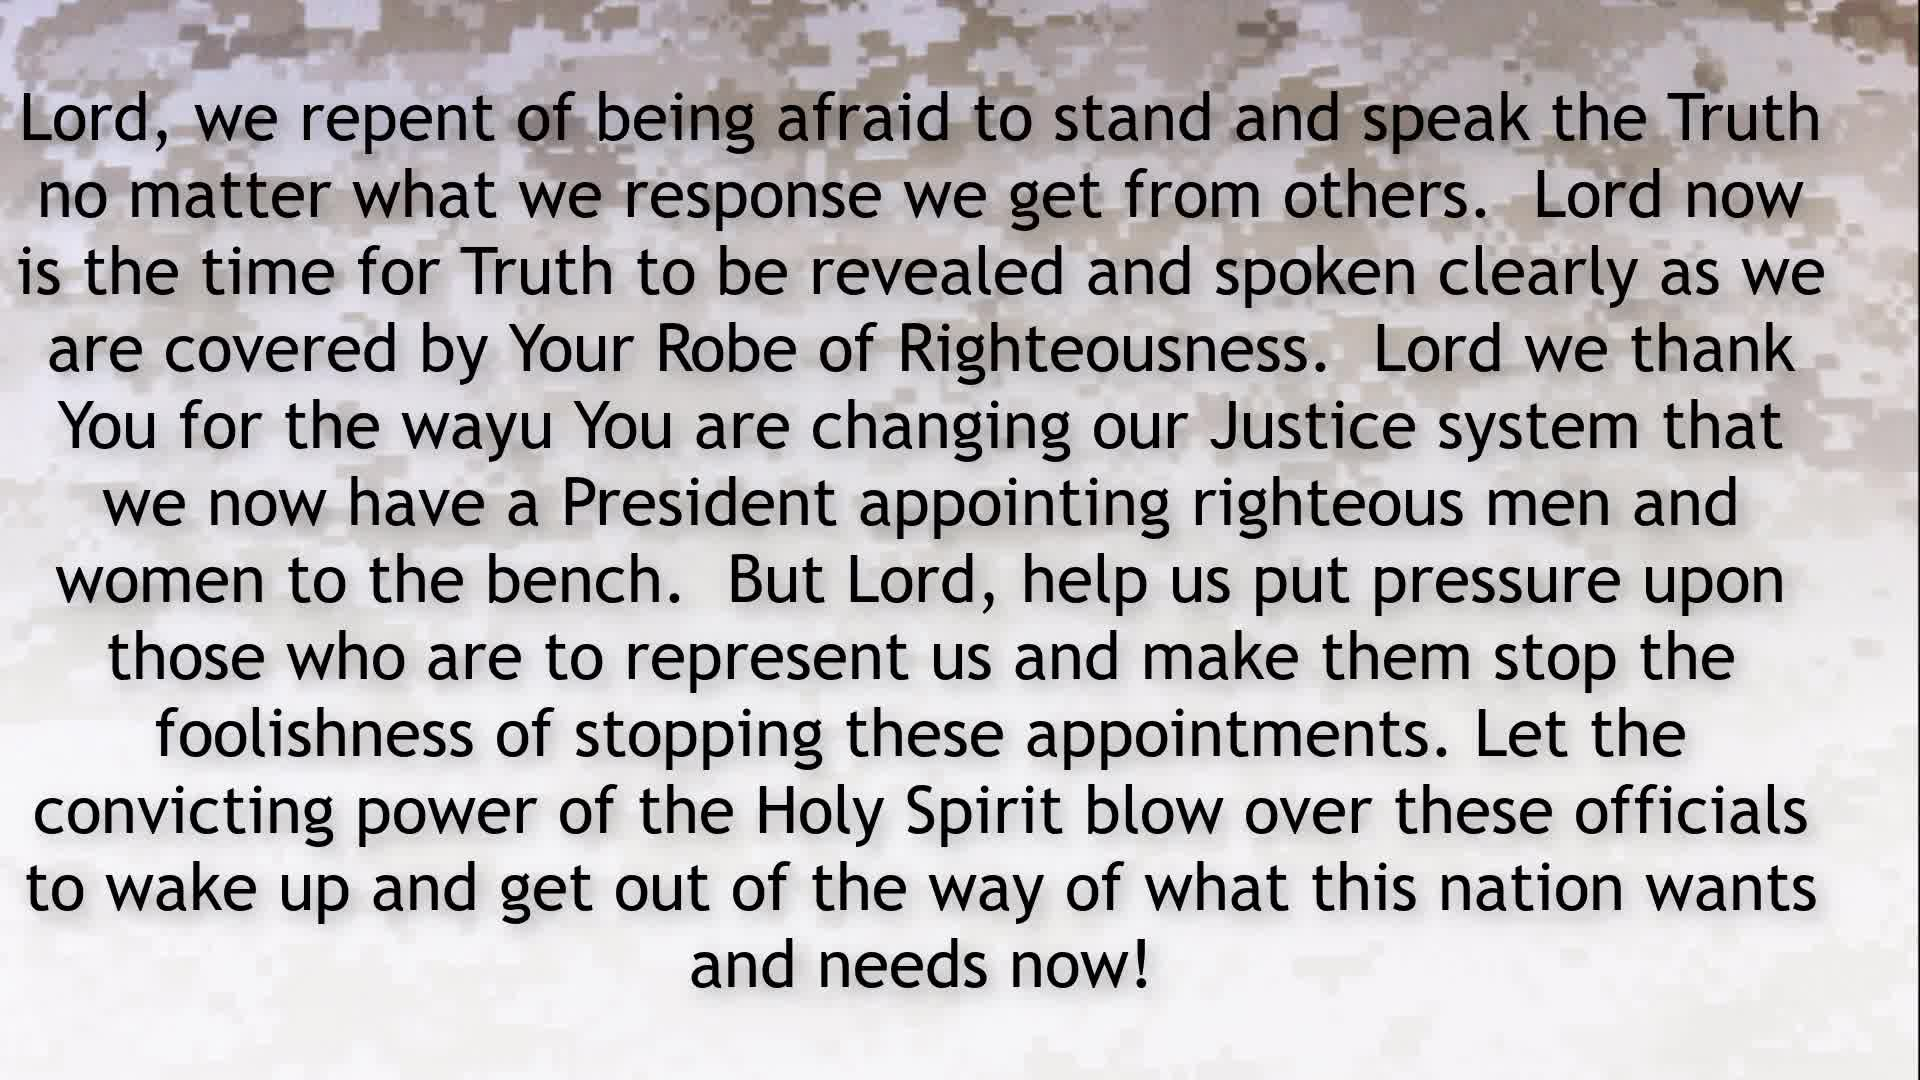 PRAYER FOCUS OUR CODE OF CONDUCT THE LAWS WE OBEY,  BUT ARE WE LEGALISTIC OR IN THE SPIRIT